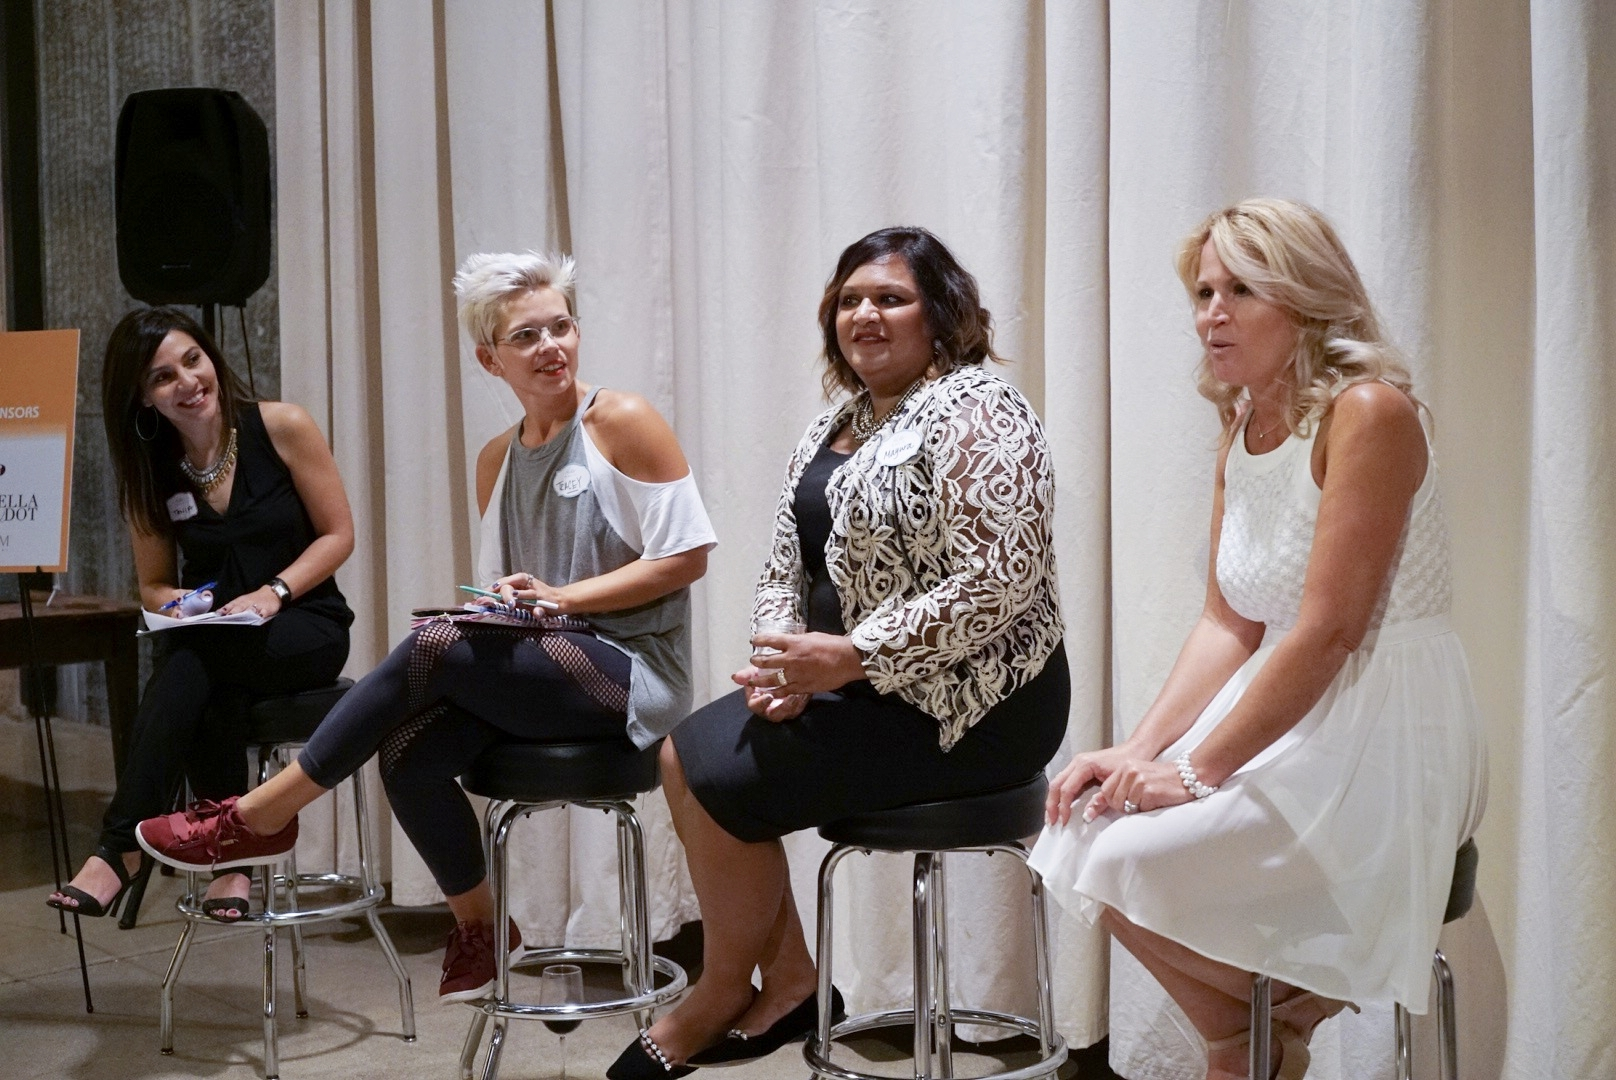 September 27, 2017 - WE MADE IT HAPPEN! THANK YOU TO THE WOMEN WHO ATTENDED AND PARTICIPATED: DR. WENDY BORLABI, TRACEY JANOWITZ, MAYURA KUMAR, DOLLY MCCARTTHY AND DEBBIE PICKUS.OUR SPONSORS ROCK: CHICAGO WOMAN MAGAZINE, STELLA & DOT, NERIUM AND CABI.